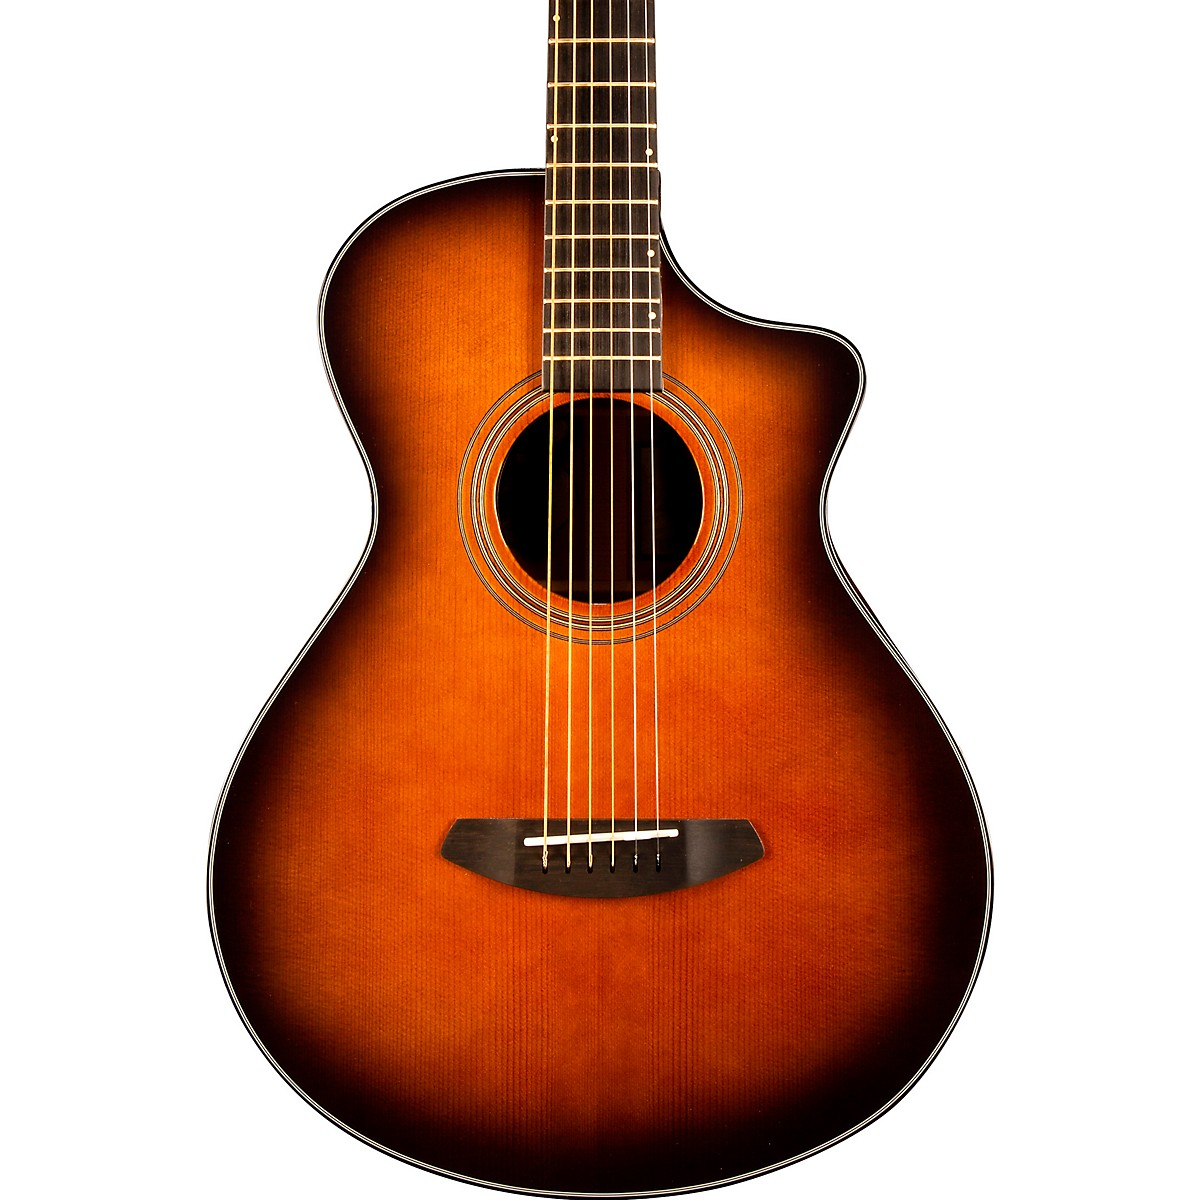 Breedlove Organic Collection Performer Concertina Cutaway CE Acoustic-Electric Guitar